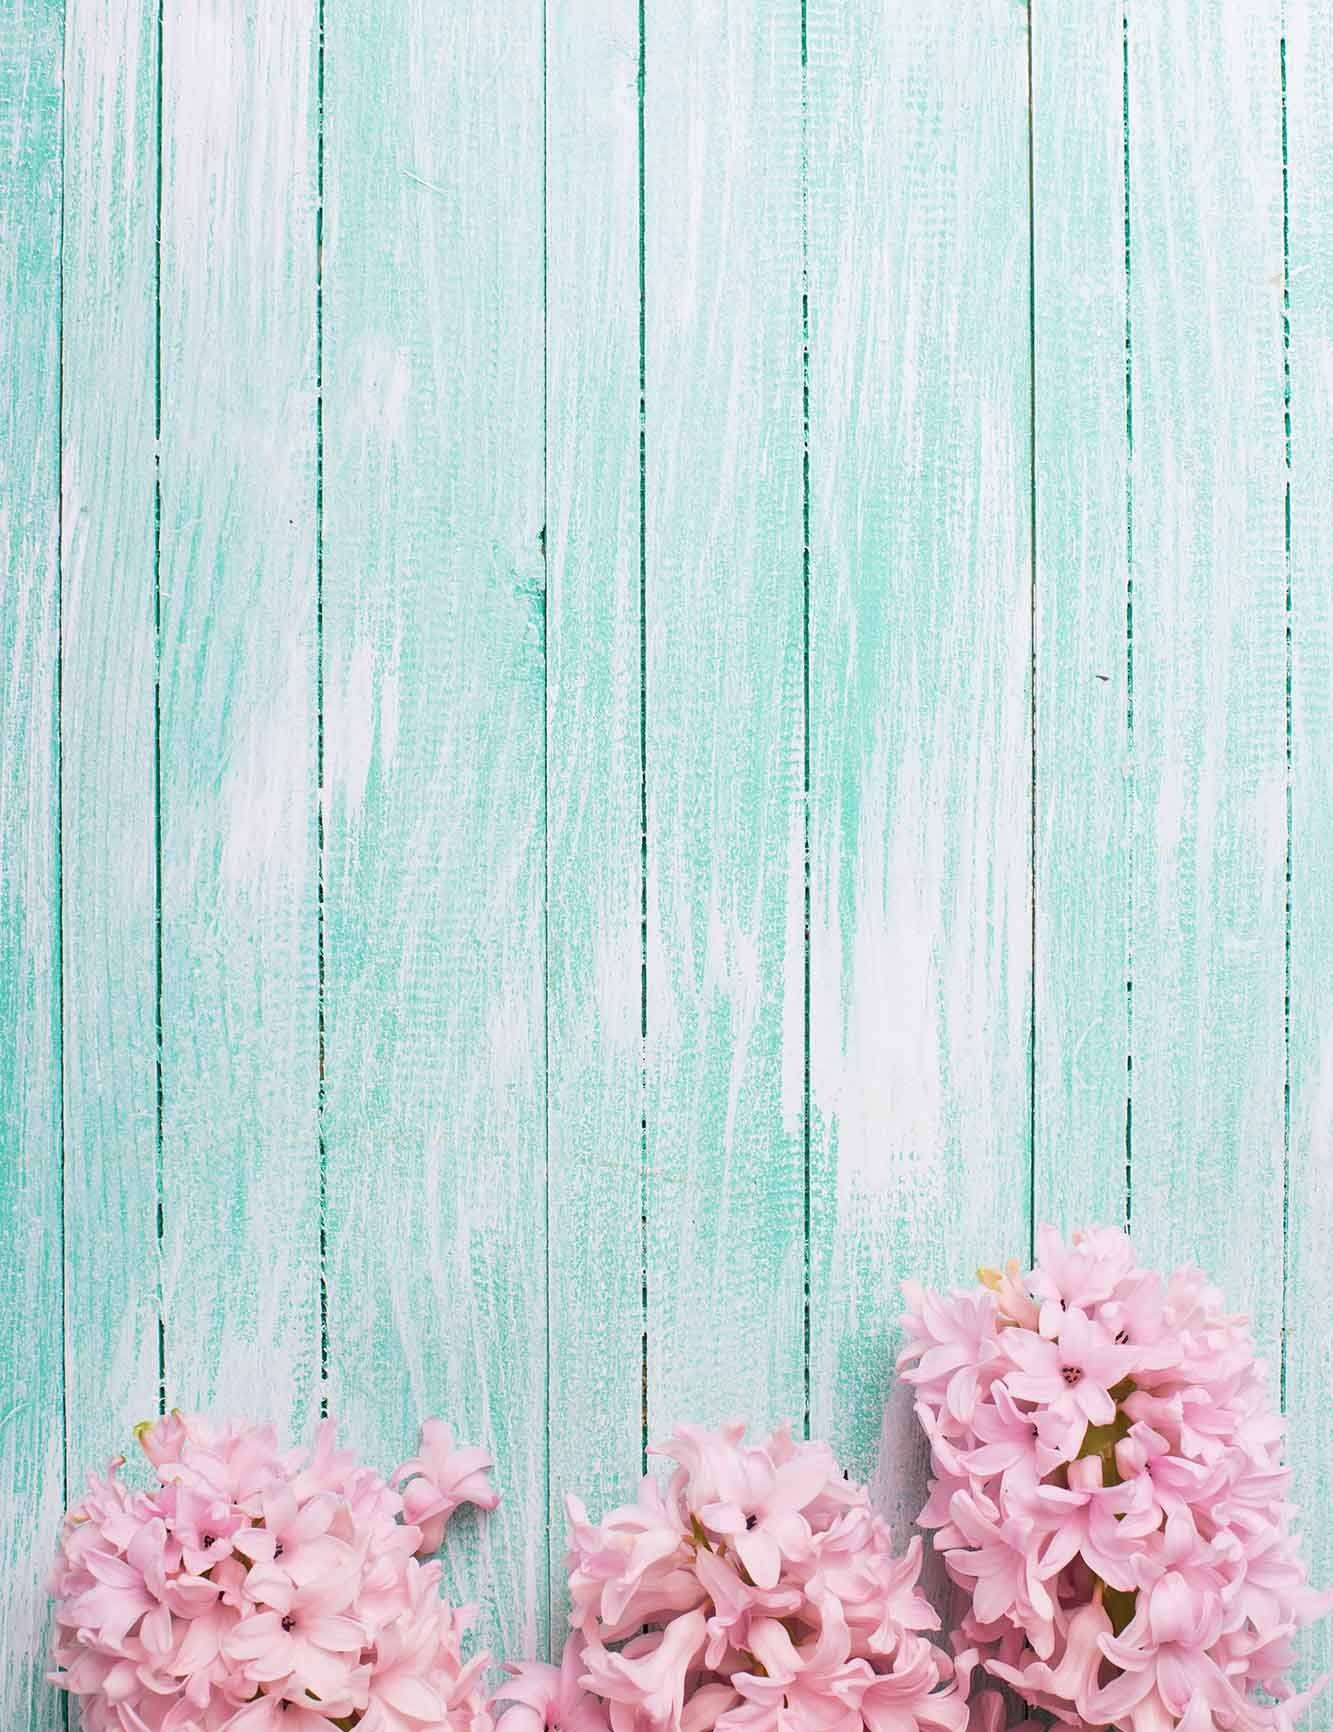 Pink flowers on powder blue wood floor photography backdrop for baby mightylinksfo